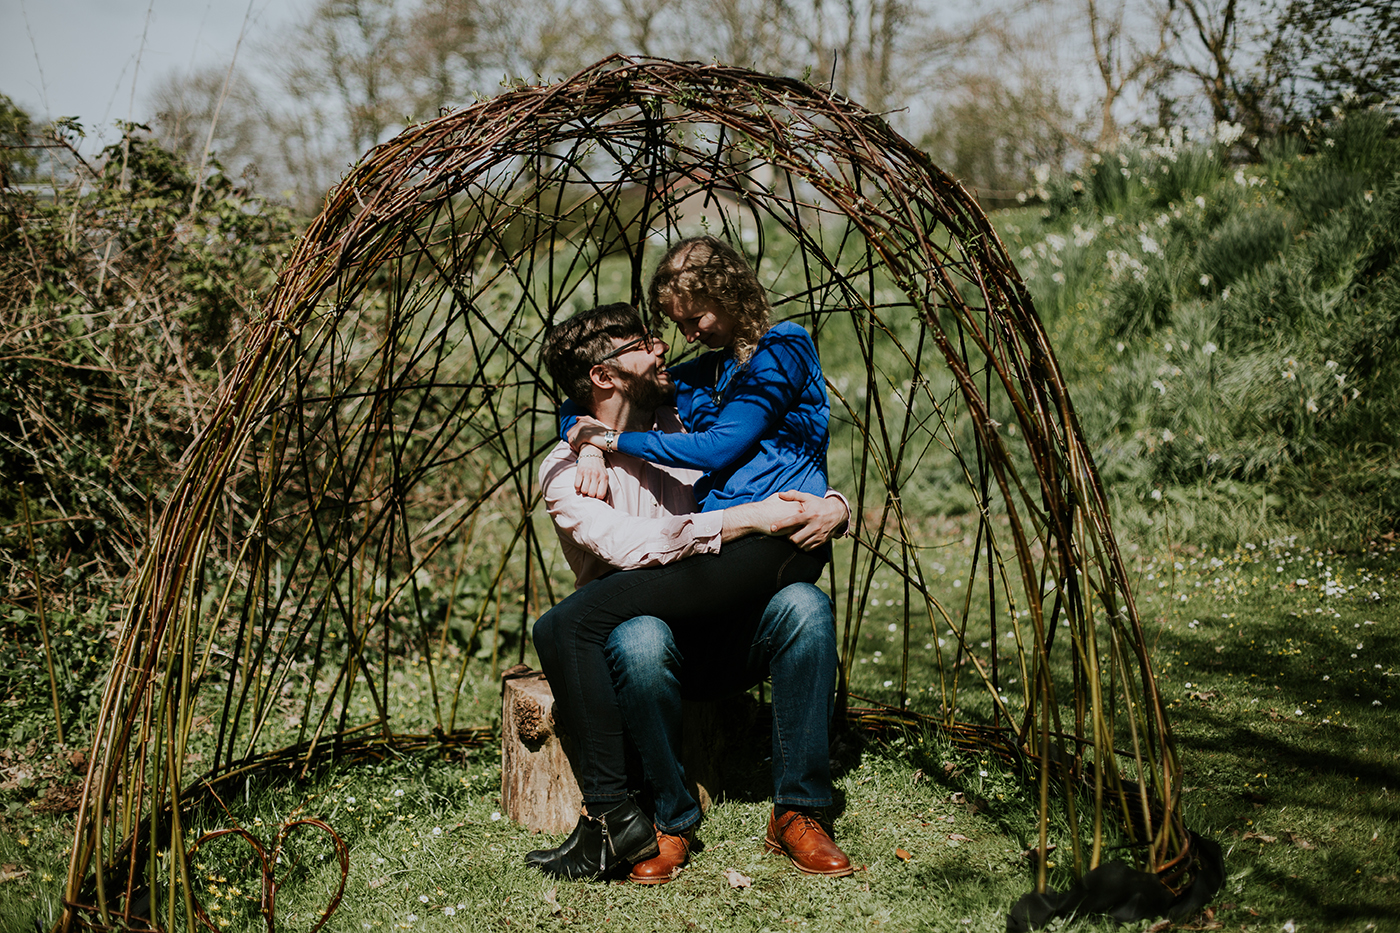 Glasgow & Largs Wedding Photographer, In the Name of Love Photography